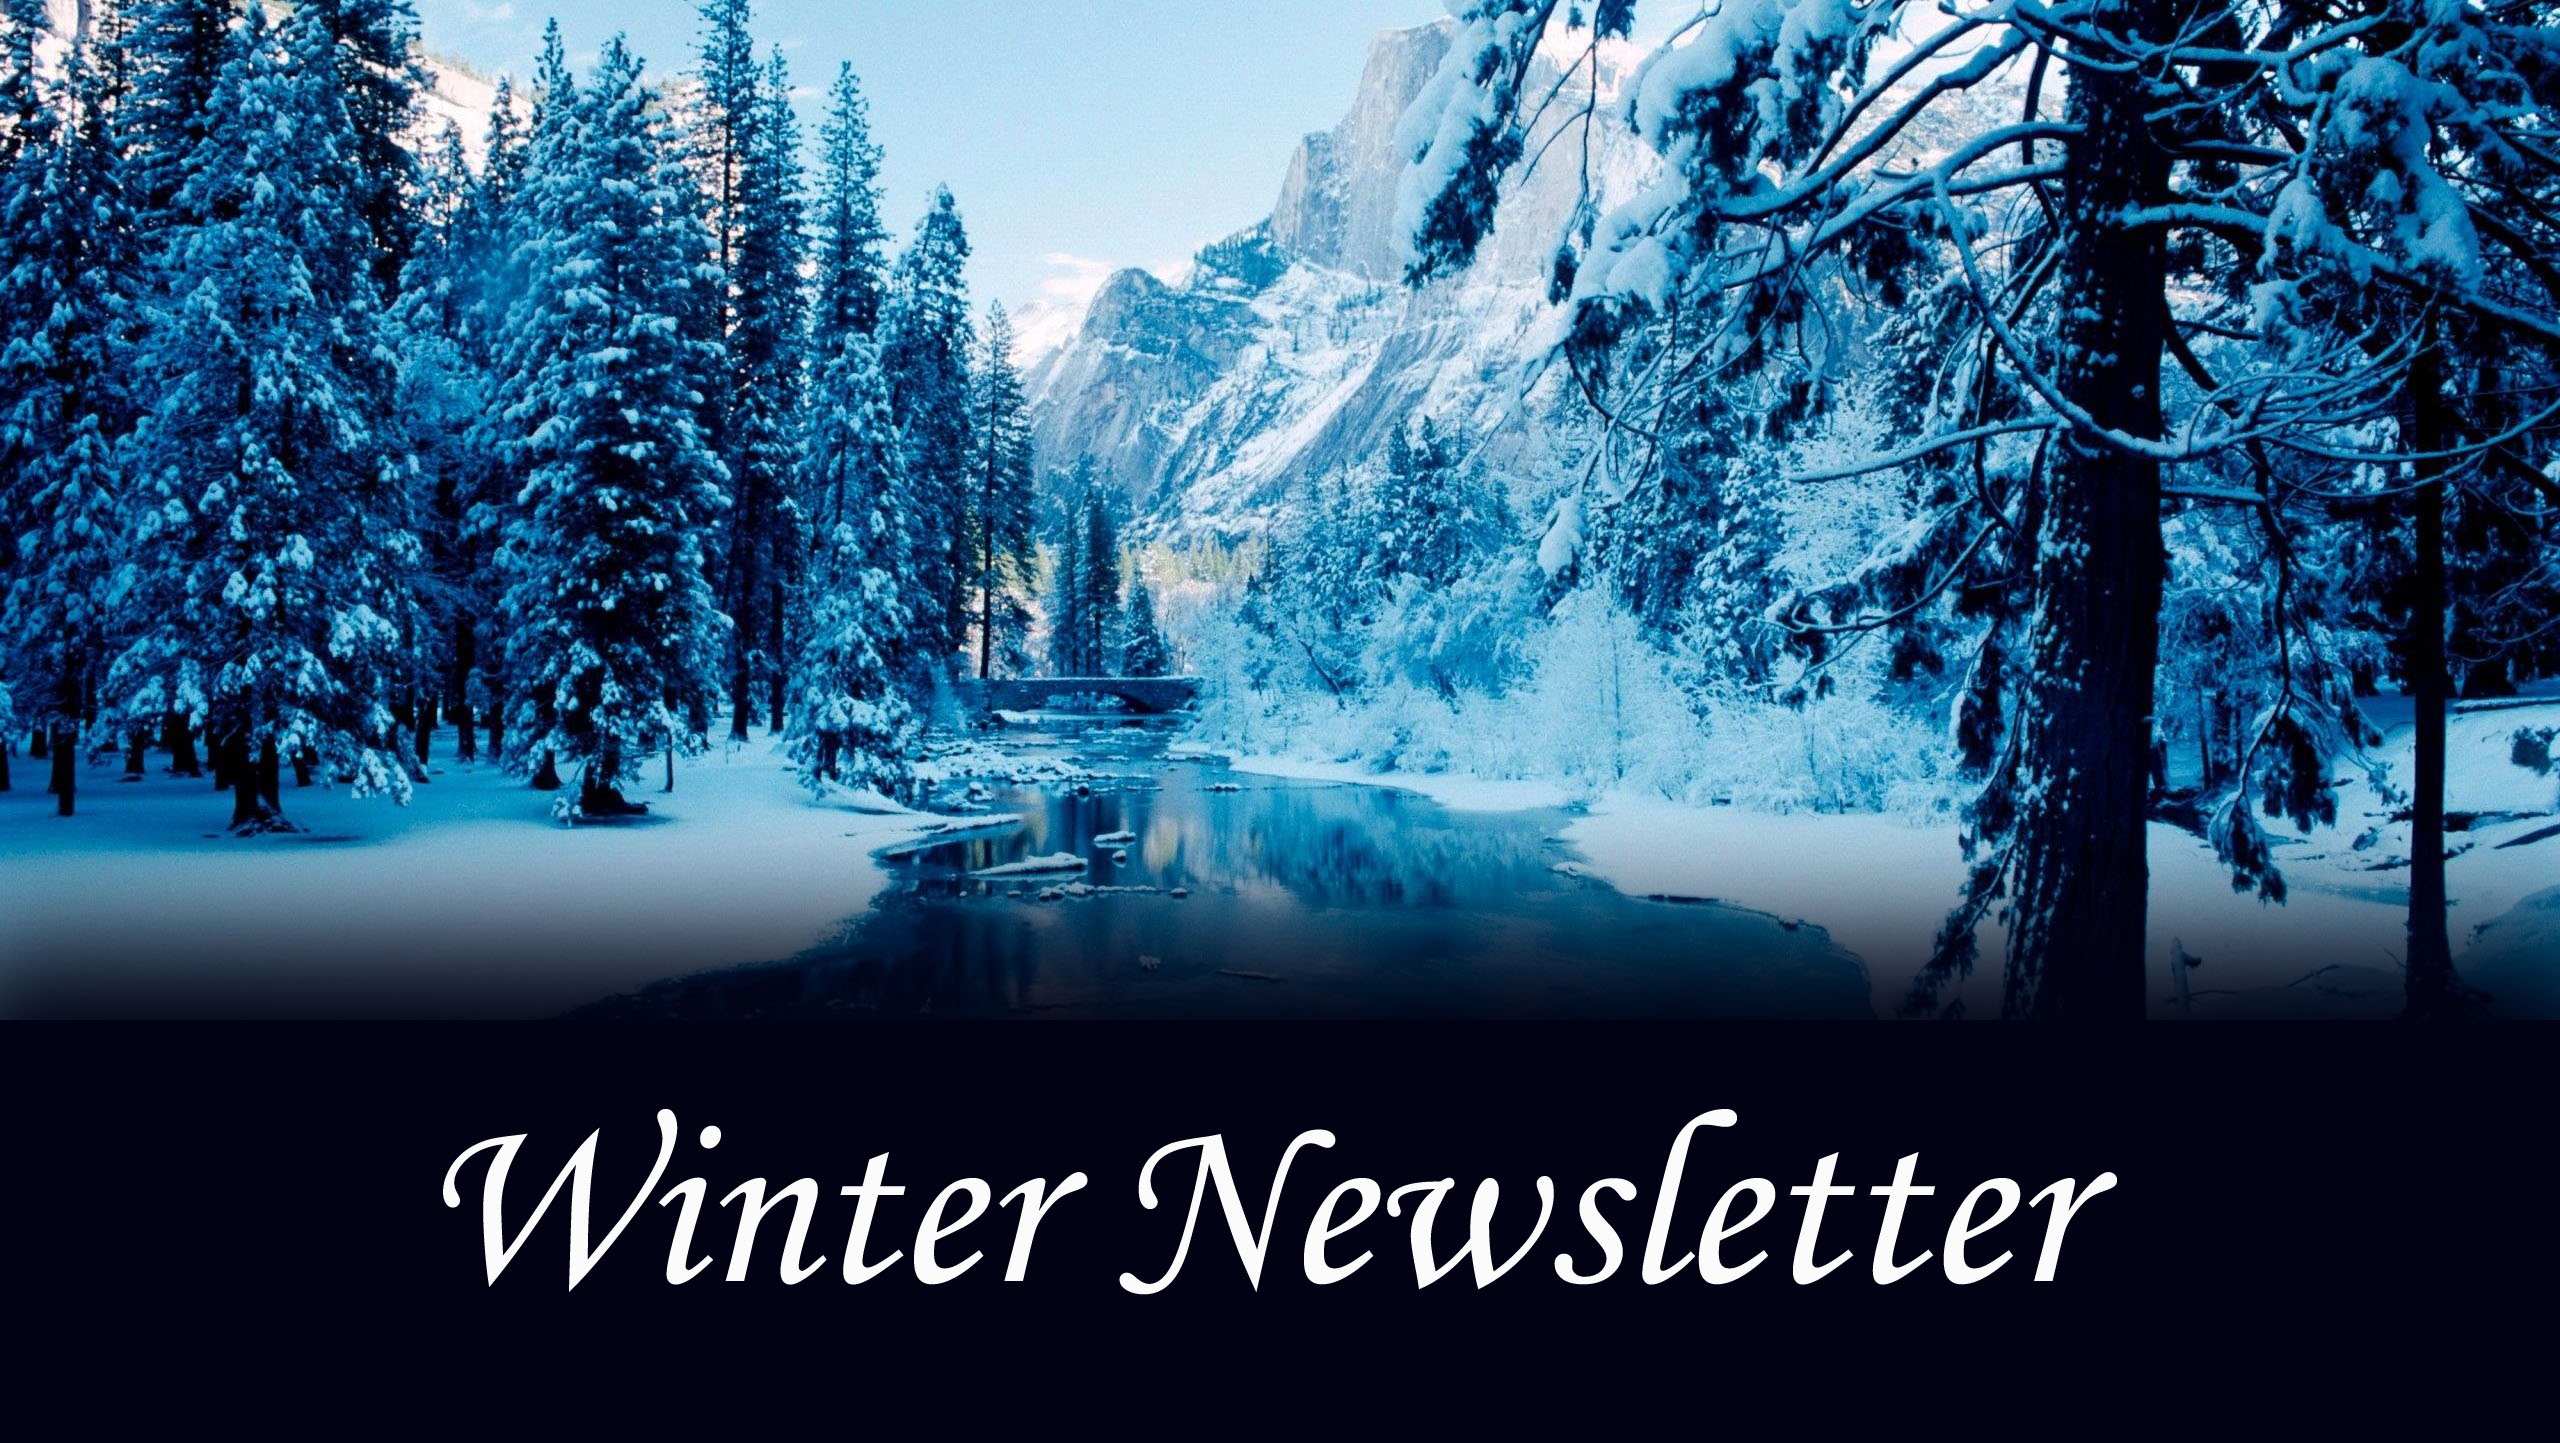 Winter Newsletter 2020 Image